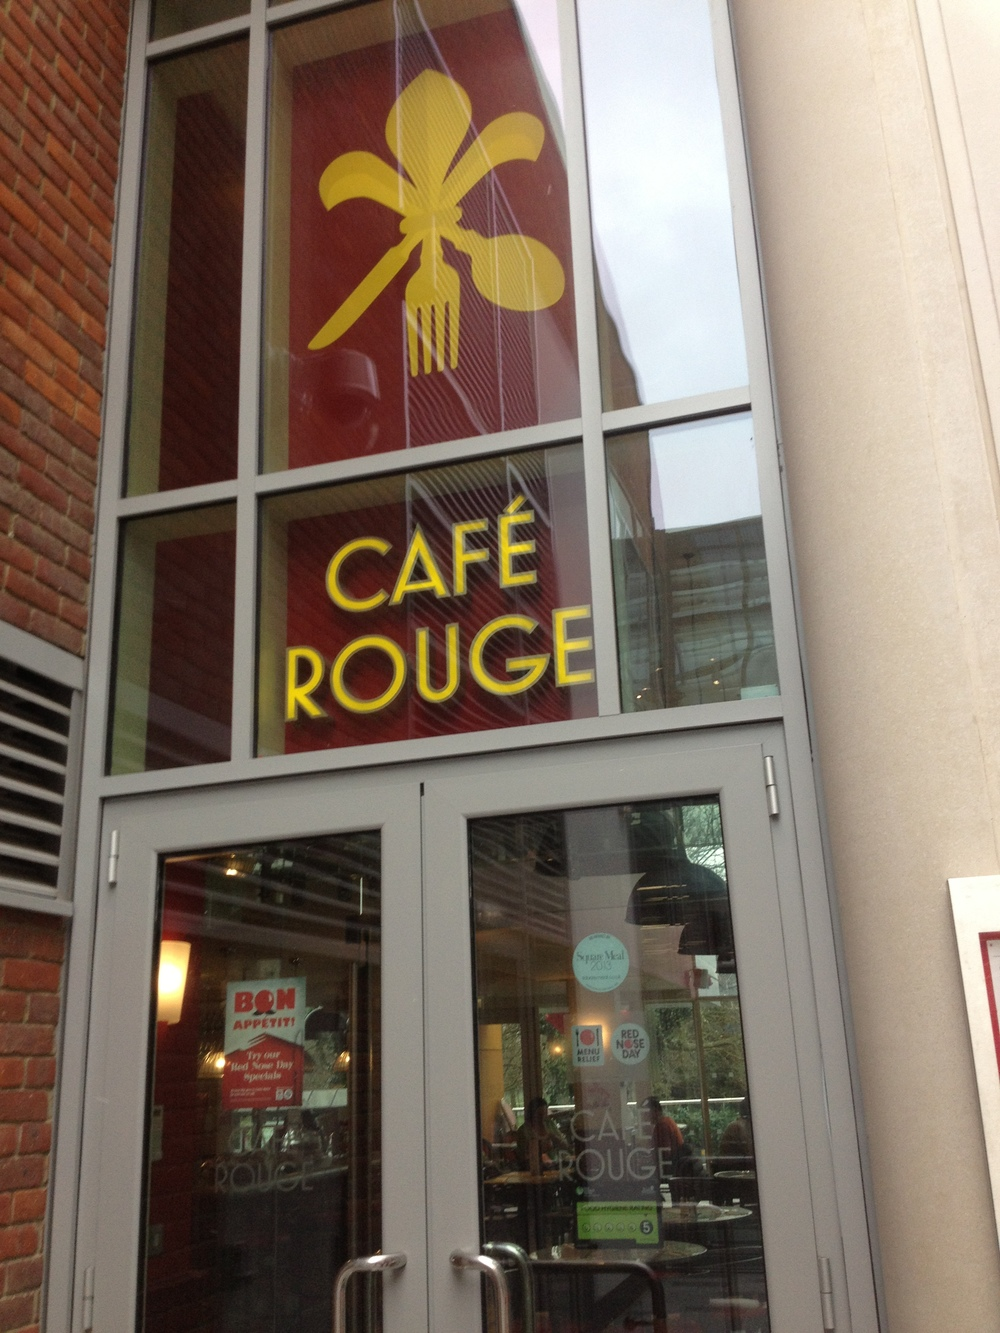 The exterior of Cafe Rouge.